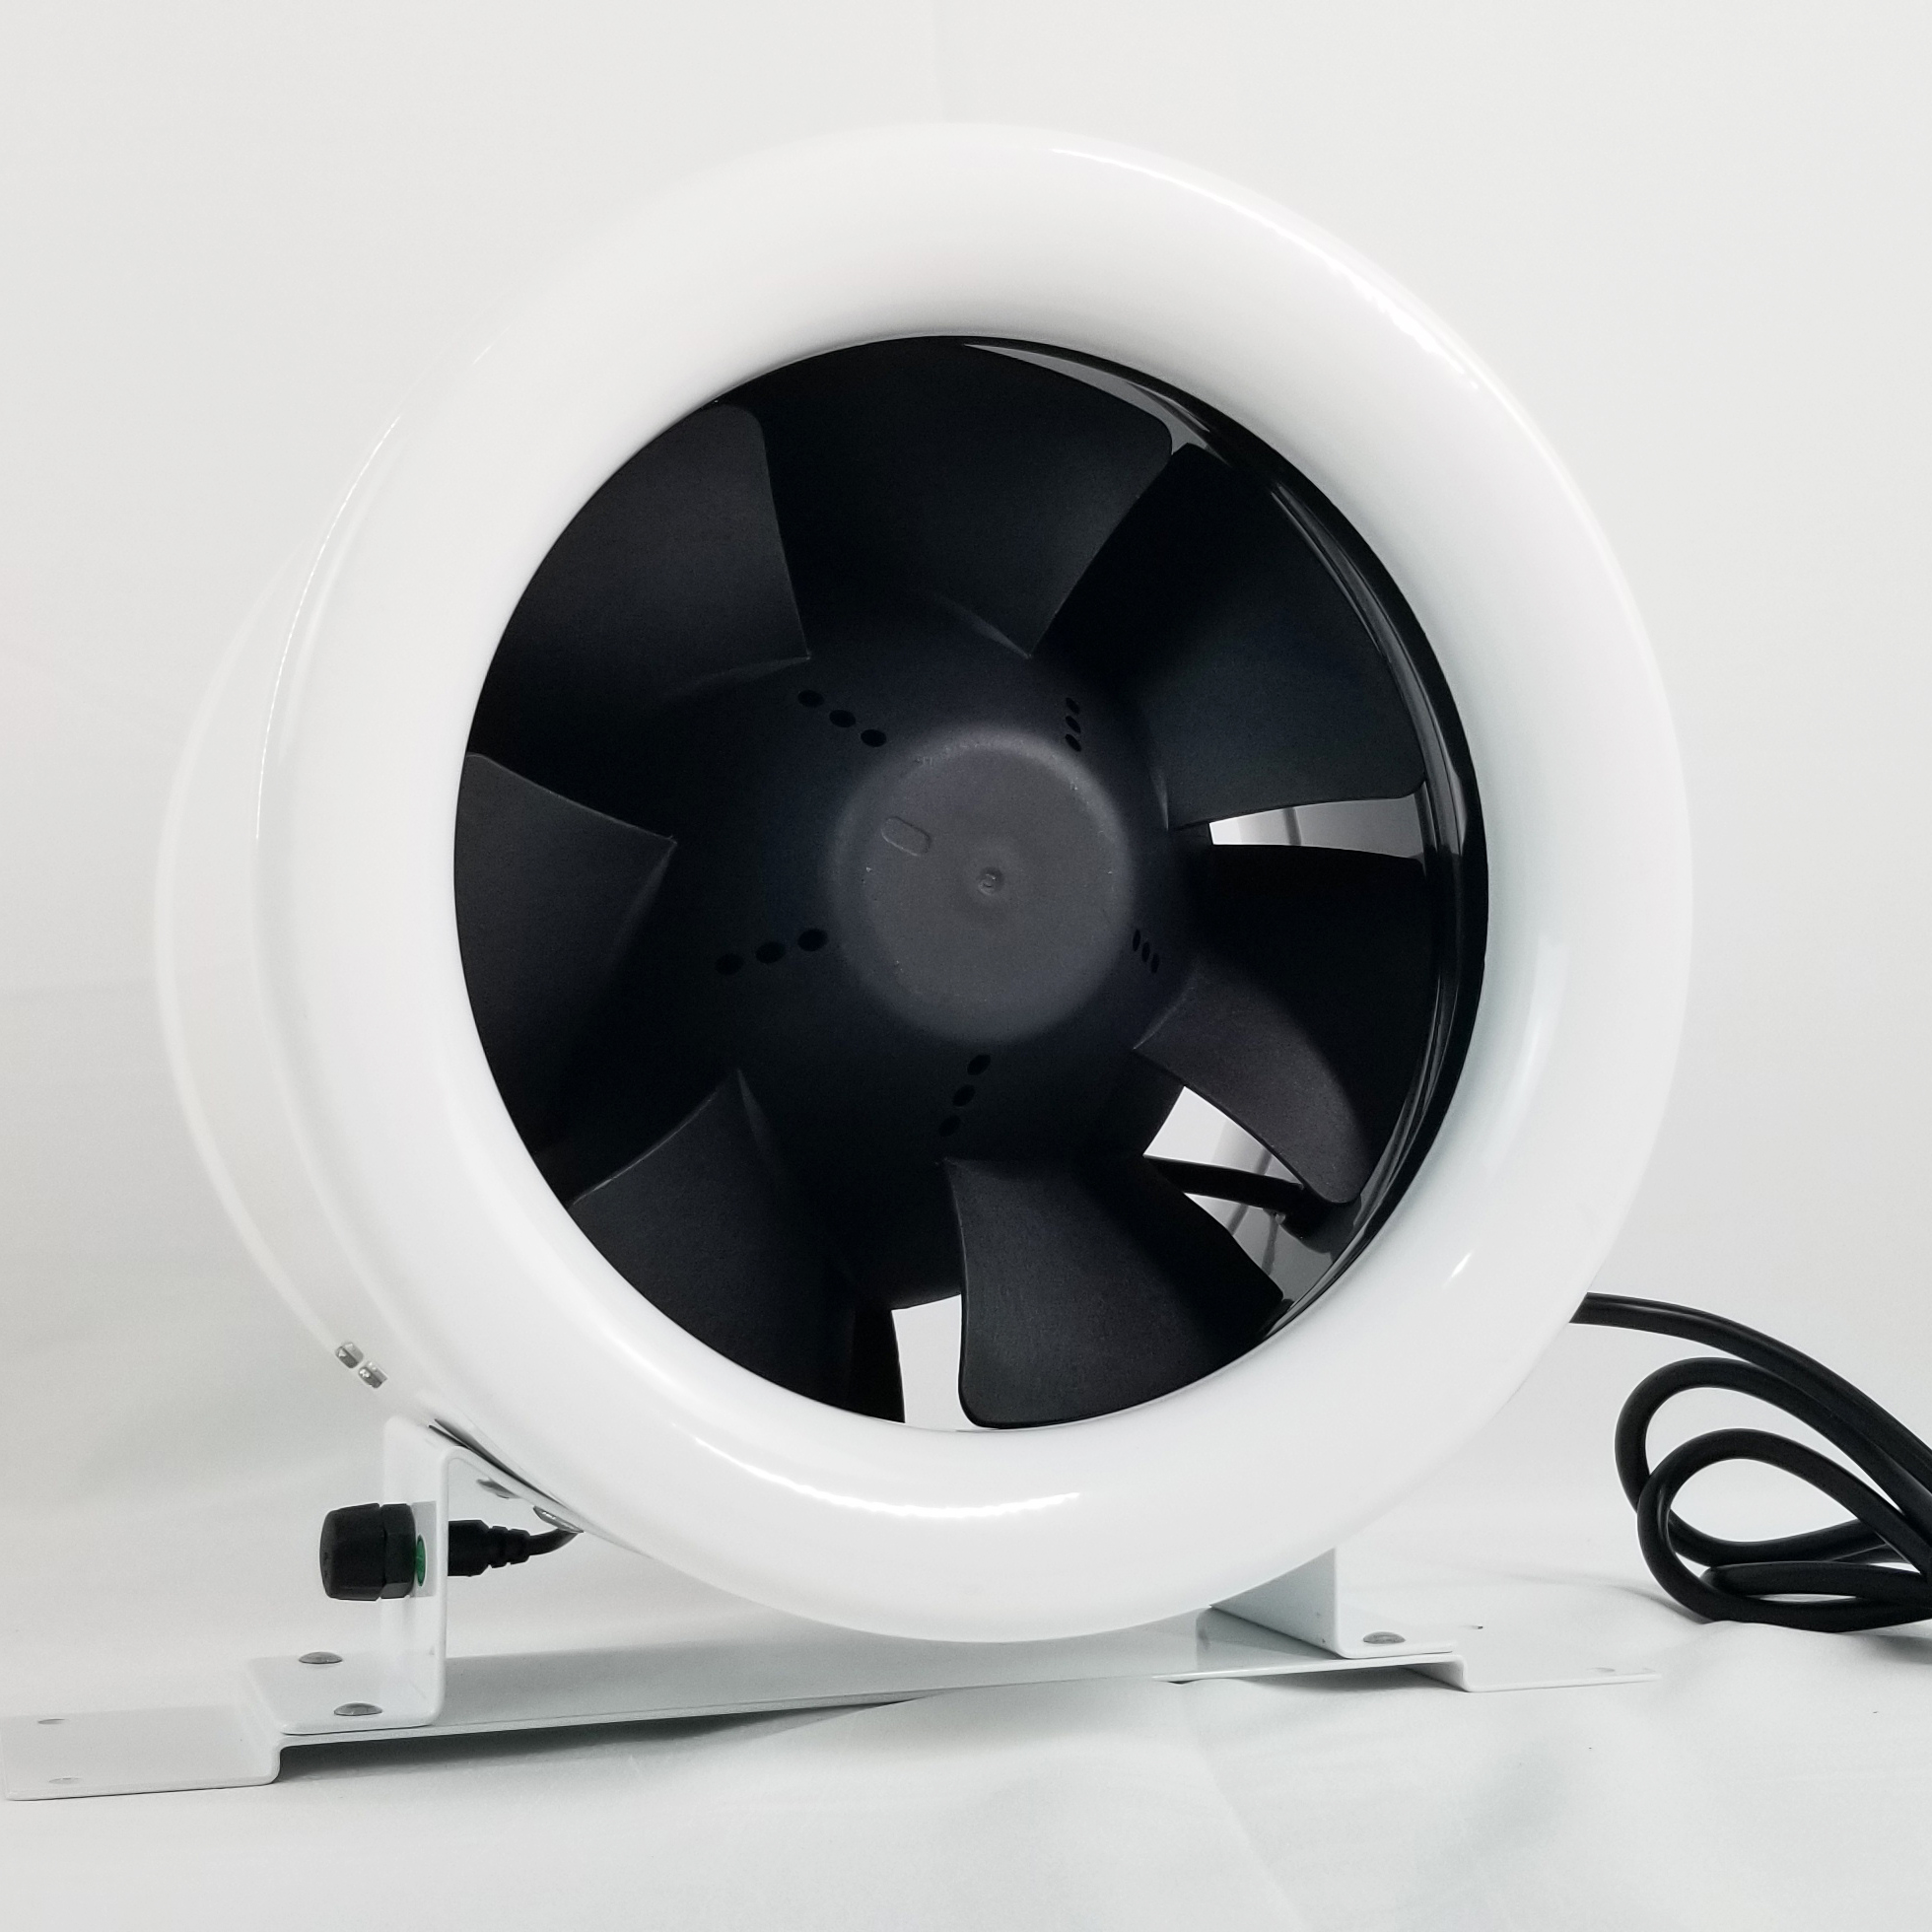 110V/220V <strong>8</strong>&quot; duct fan for grow room hydroponics <strong>ventilation</strong>